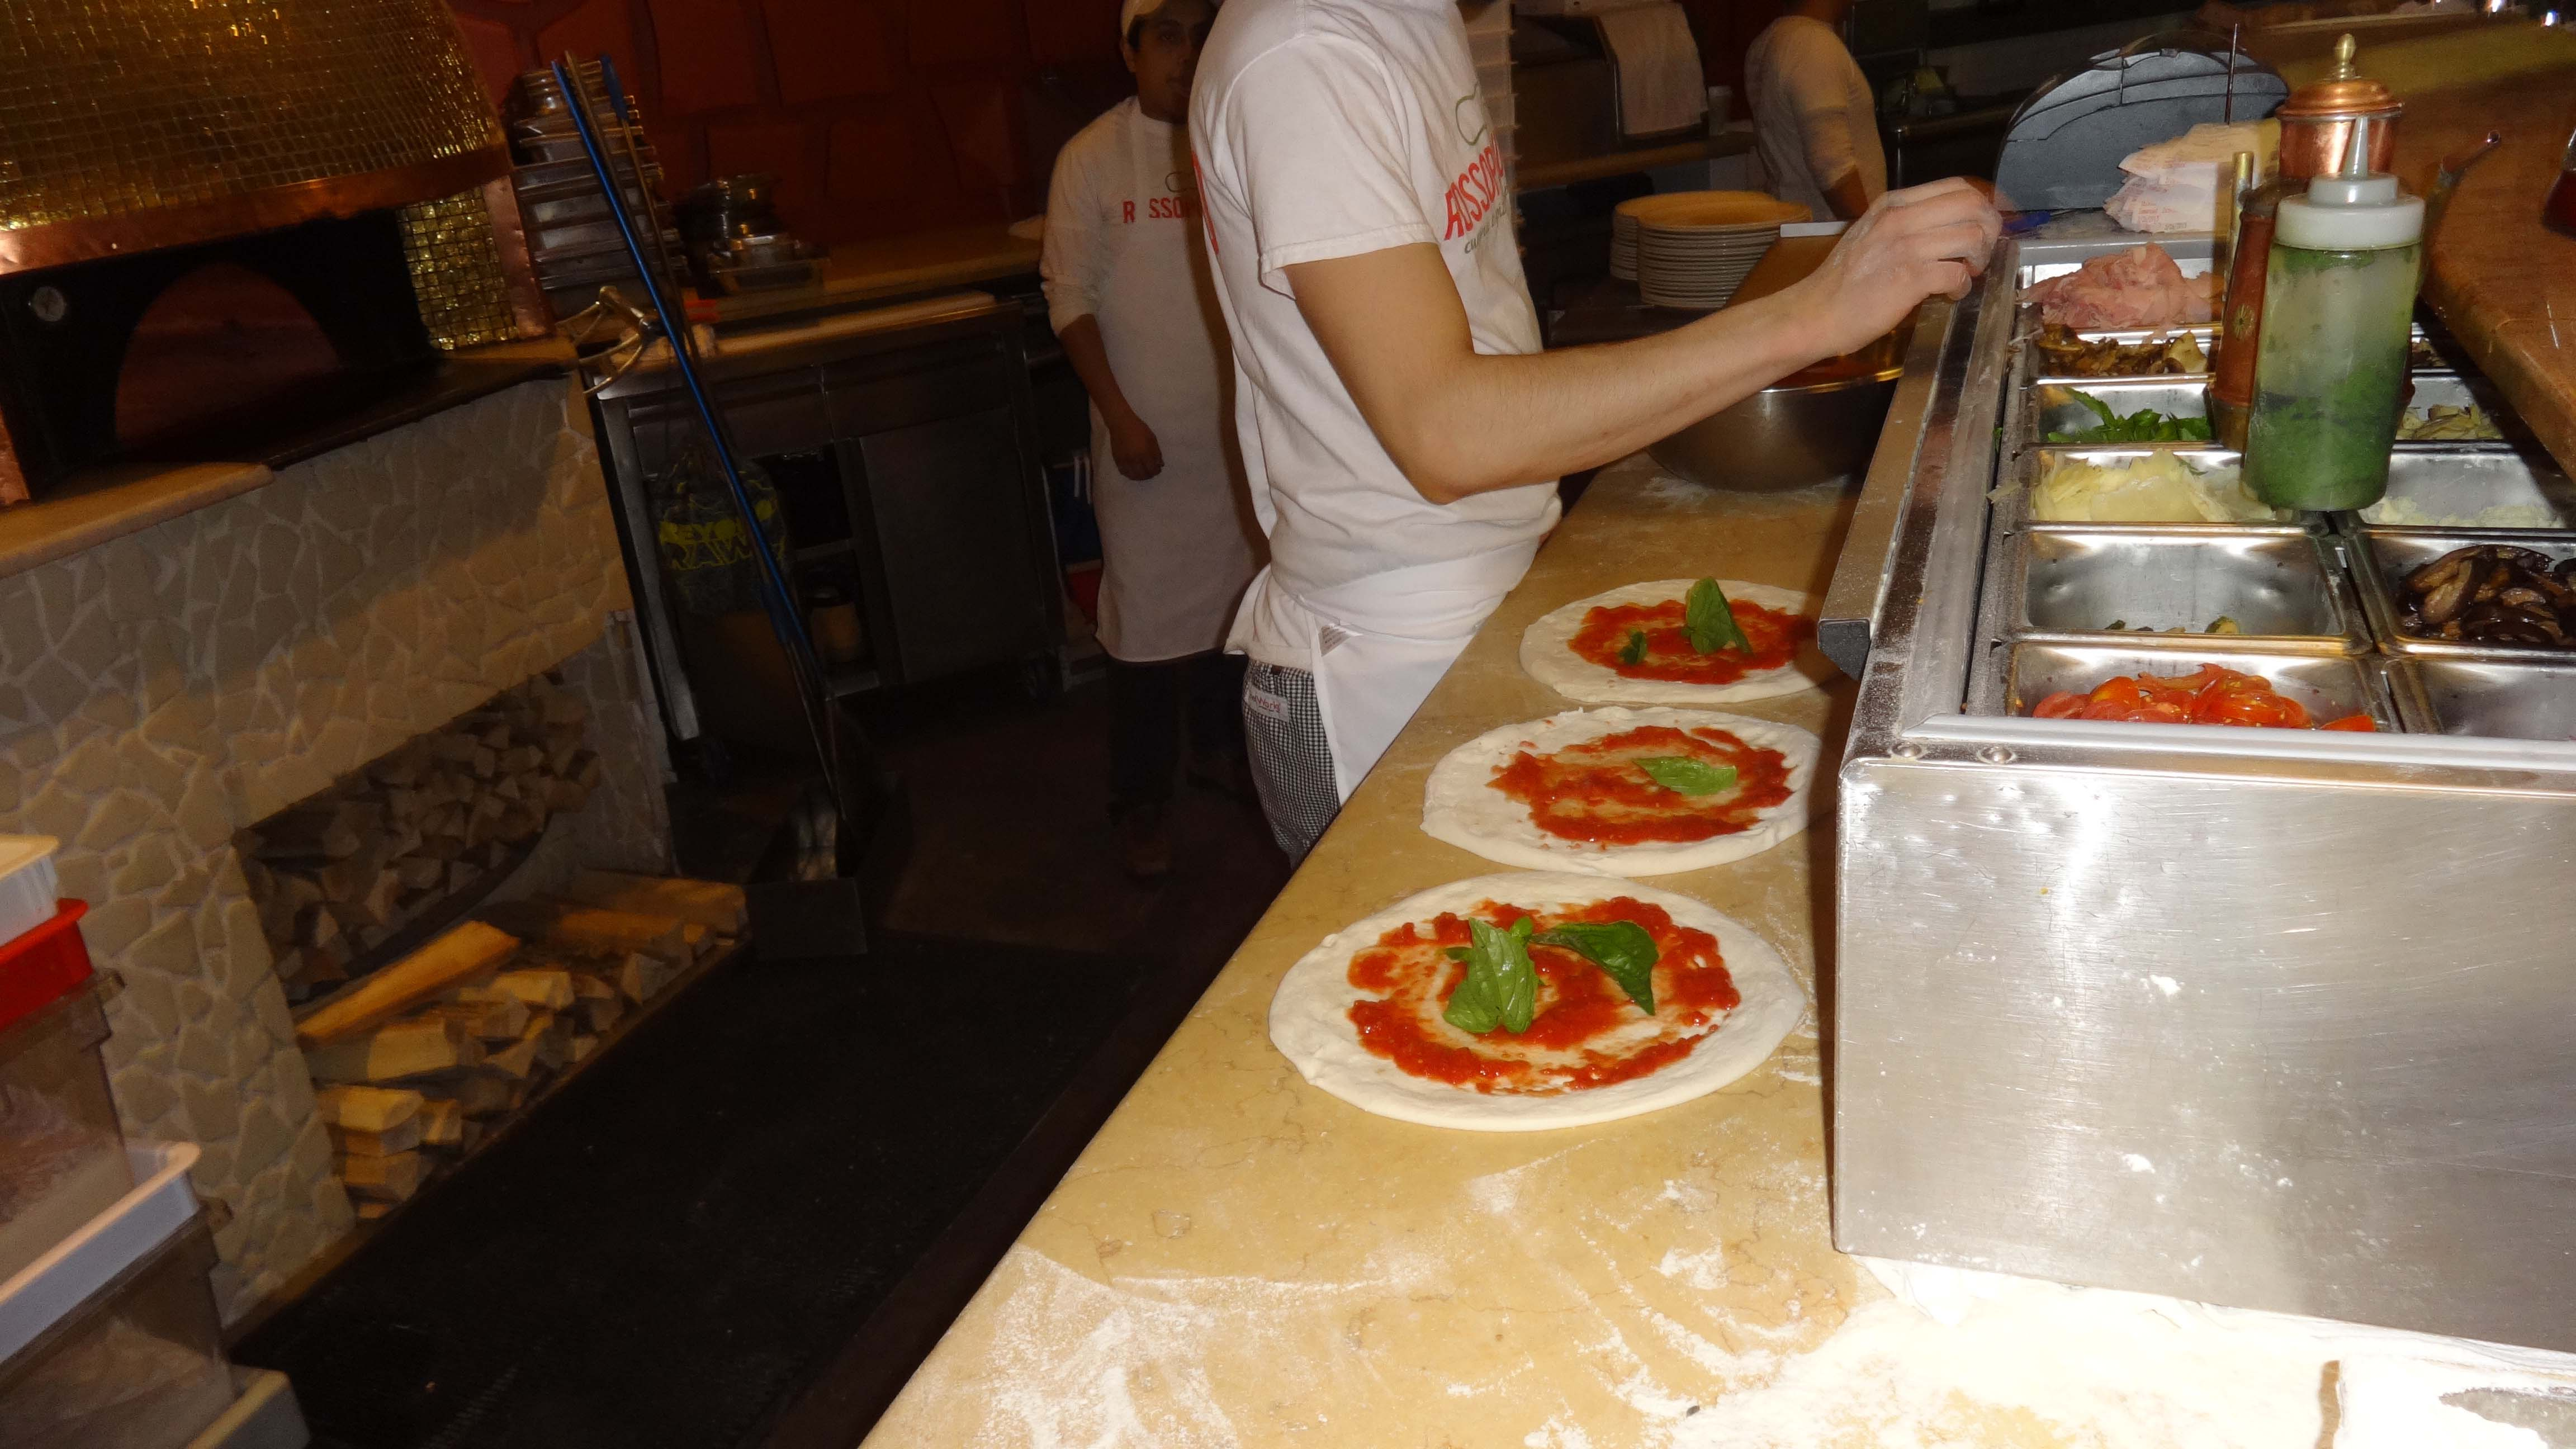 Eataly pizza being made